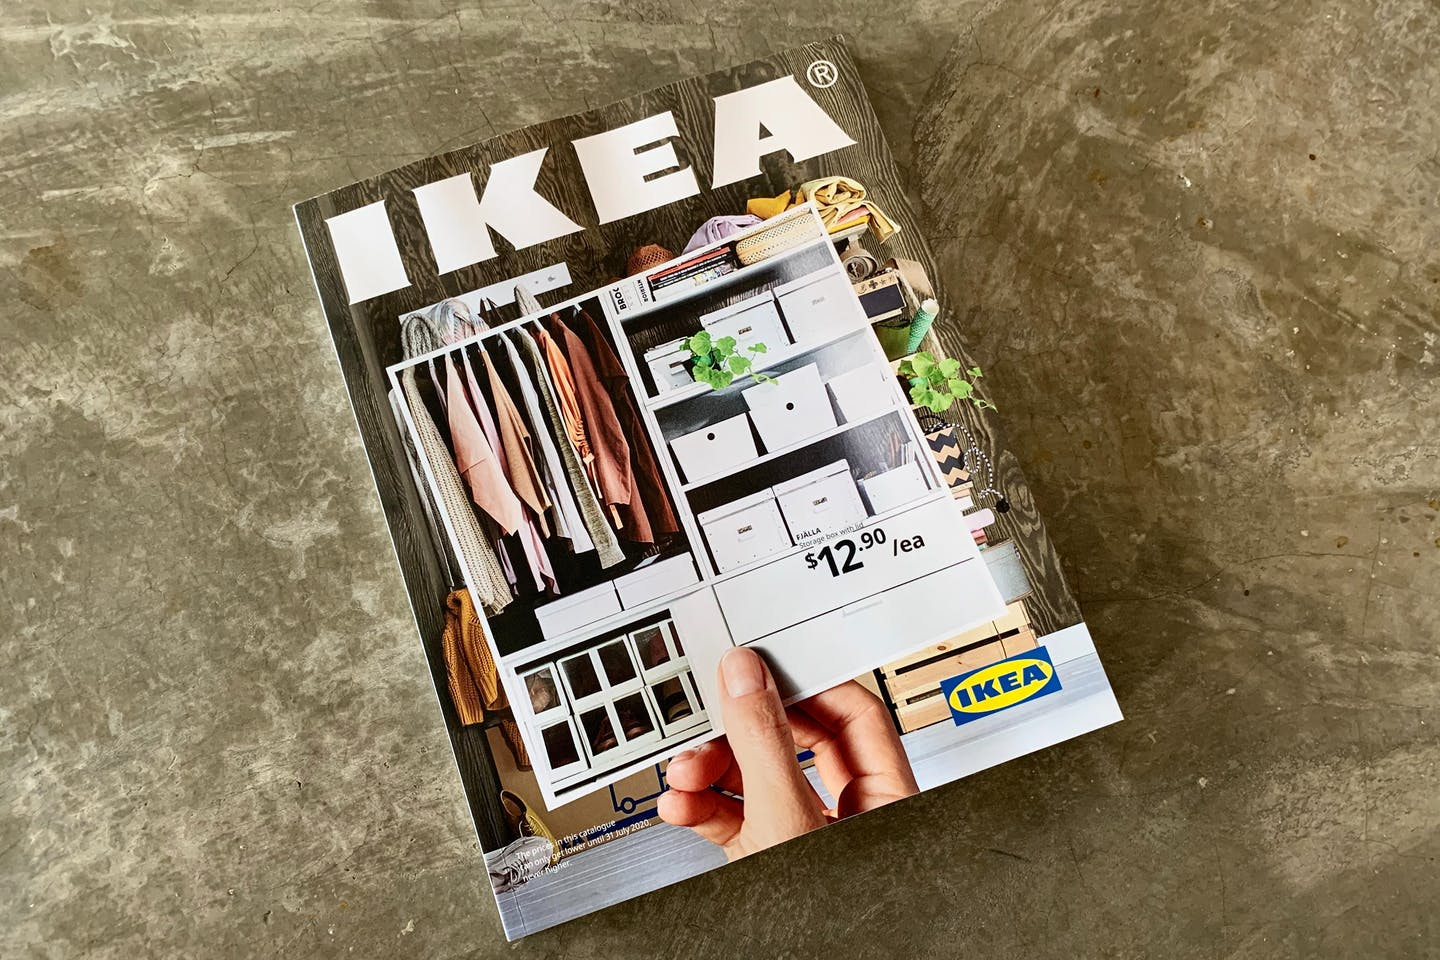 The IKEA catalogue. Customers are starting to complain about the unsolicited mass-mailing of the paper catalogues. Image: supplied by anonymous customer